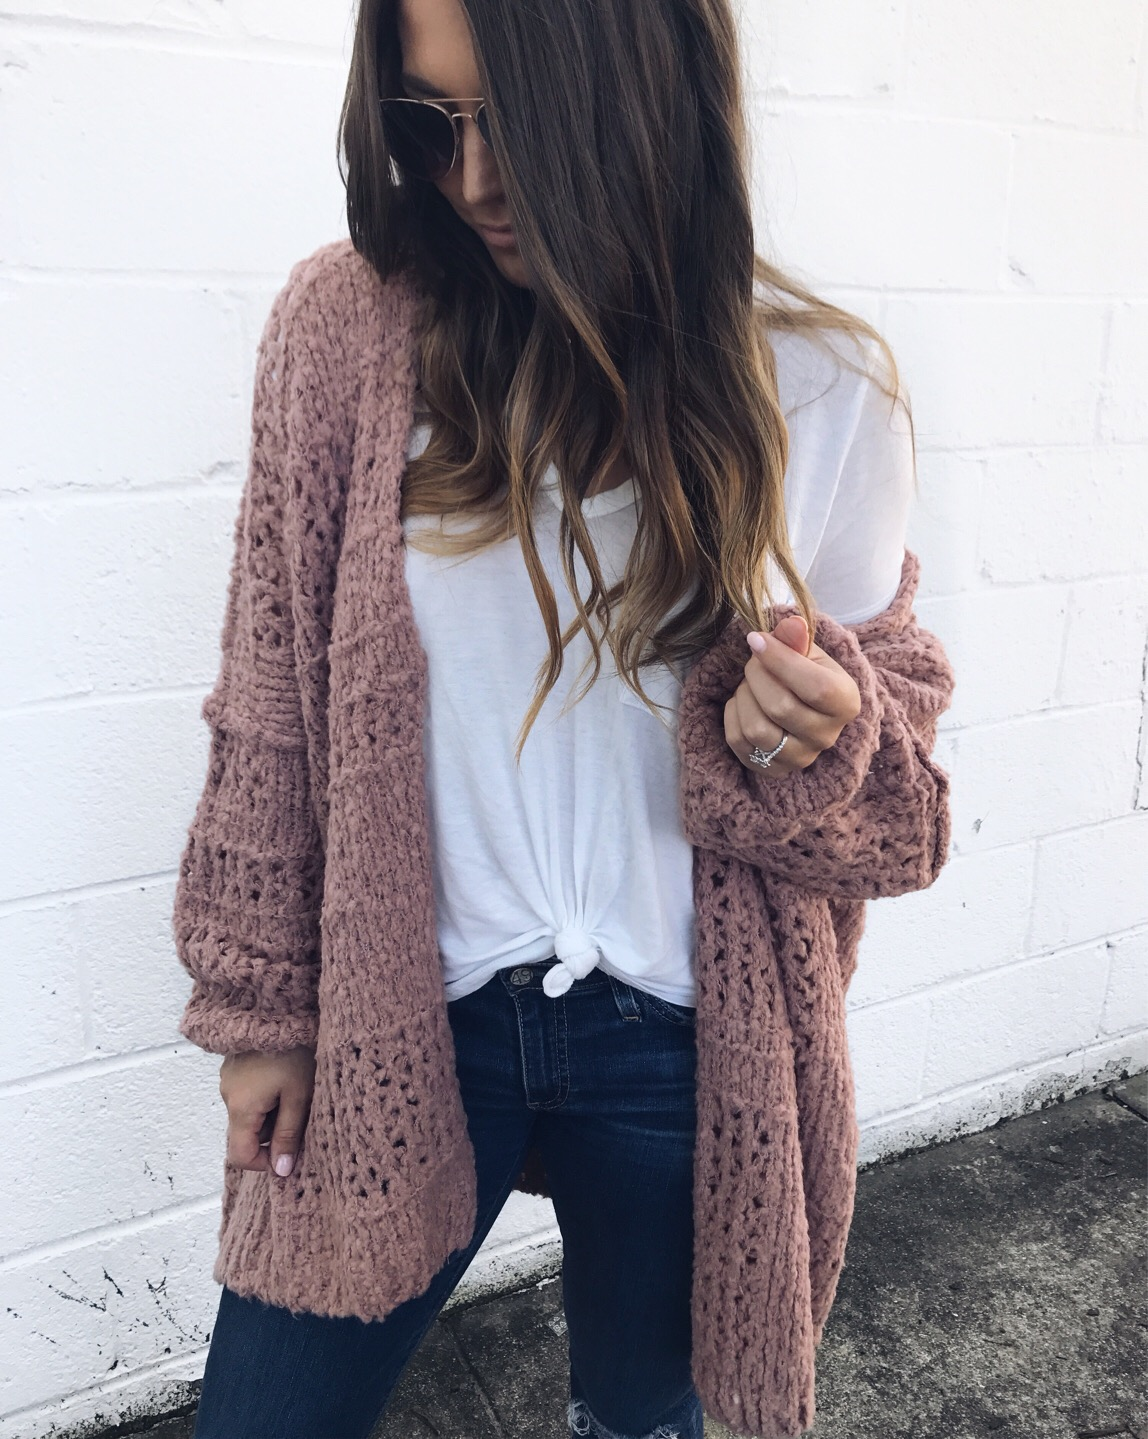 free people cardigan / lush white v neck / fall outfit idea / outfit inspiration